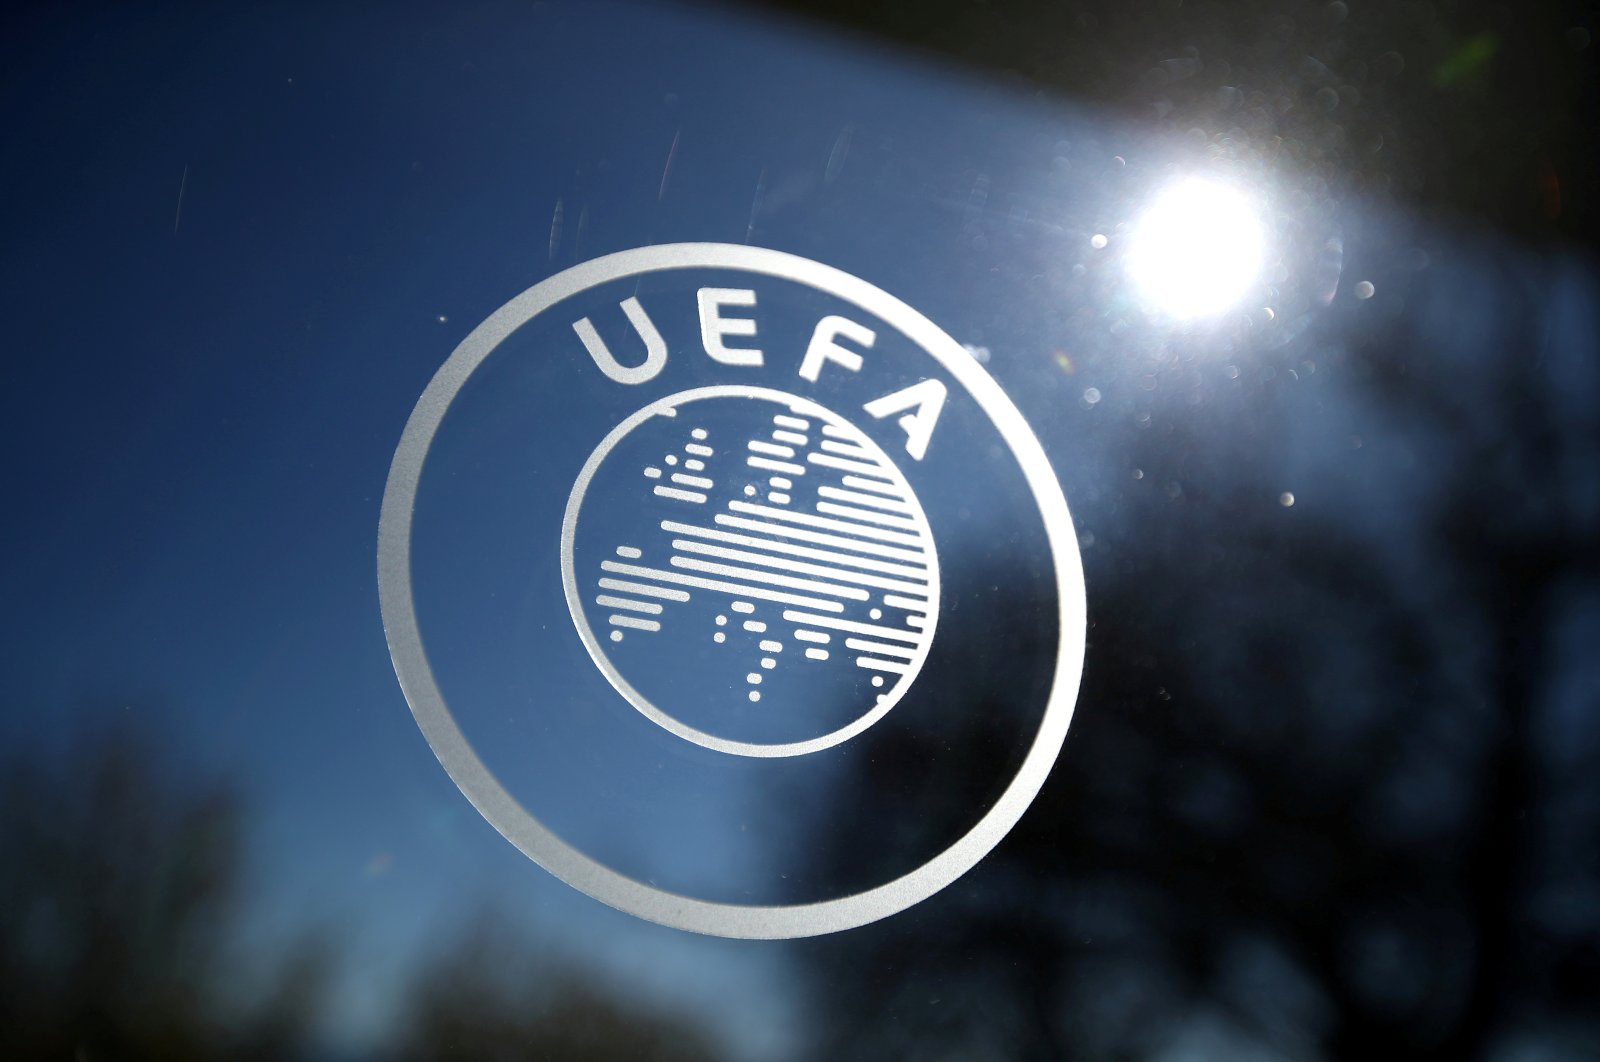 A general view of the UEFA logo seen at UEFA headquarters in Nyon, Switzerland, Feb. 28, 2020. (Reuters Photo)